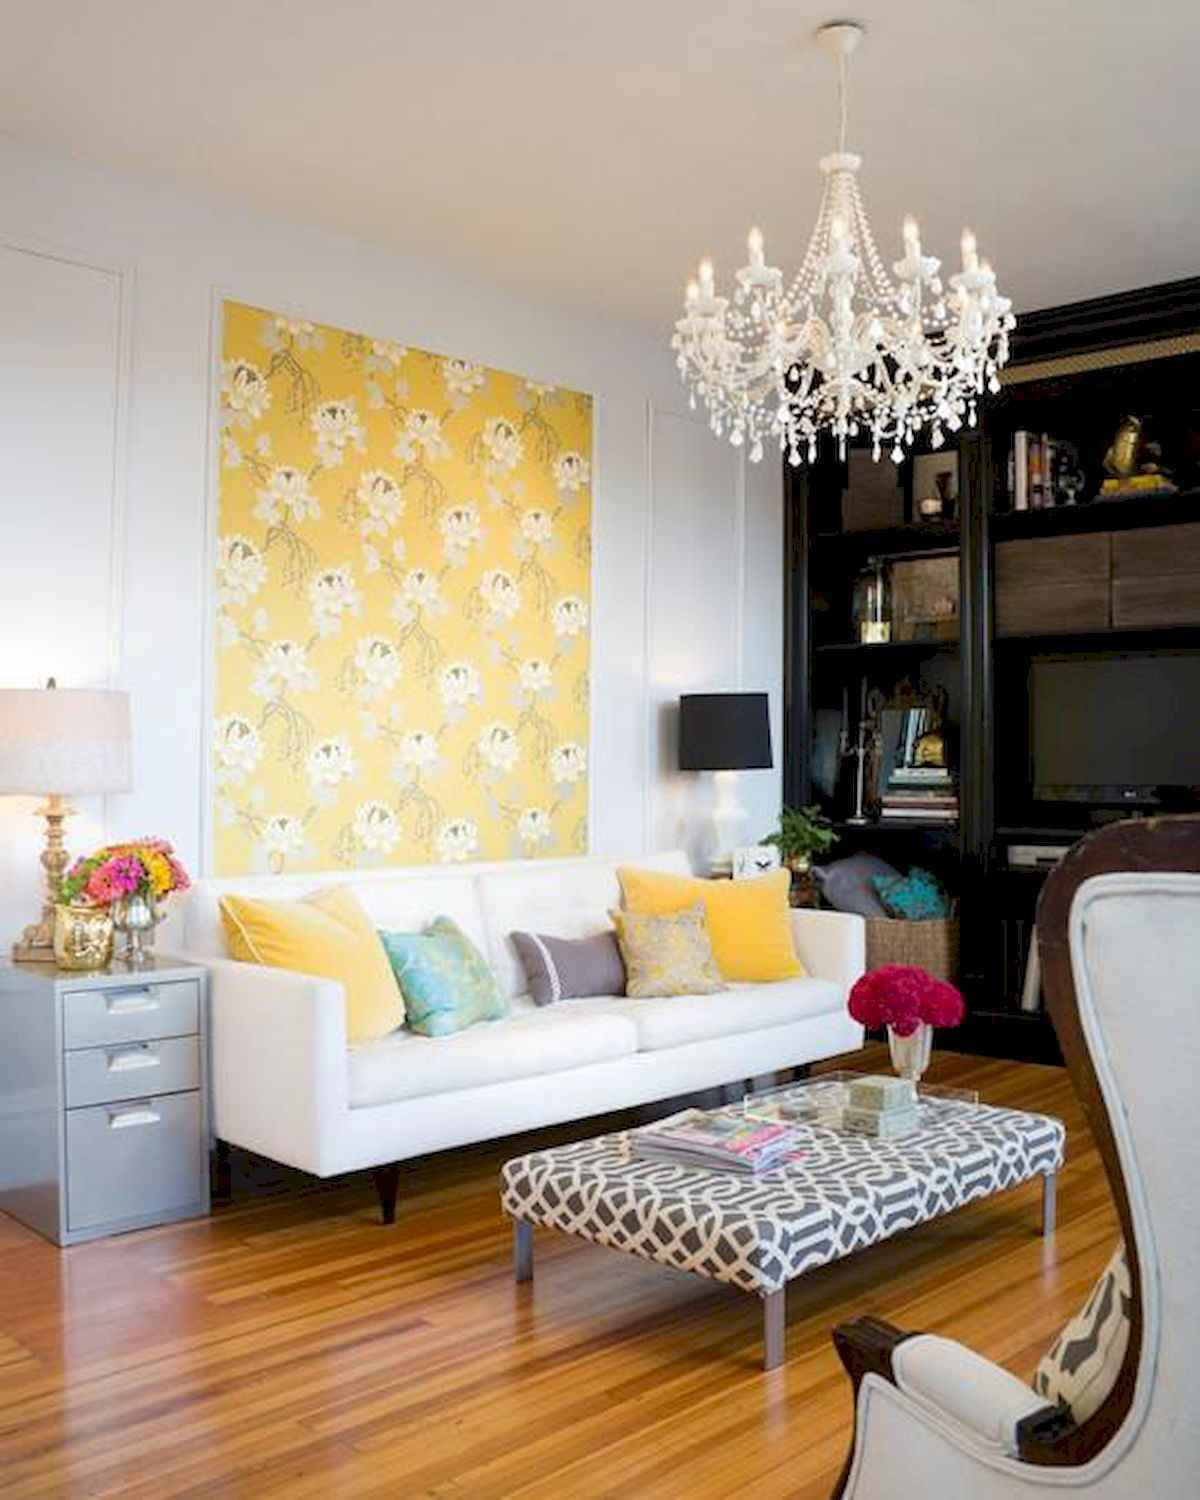 50 Beautiful Summer Apartment Decor Ideas And Makeover - CoachDecor.com